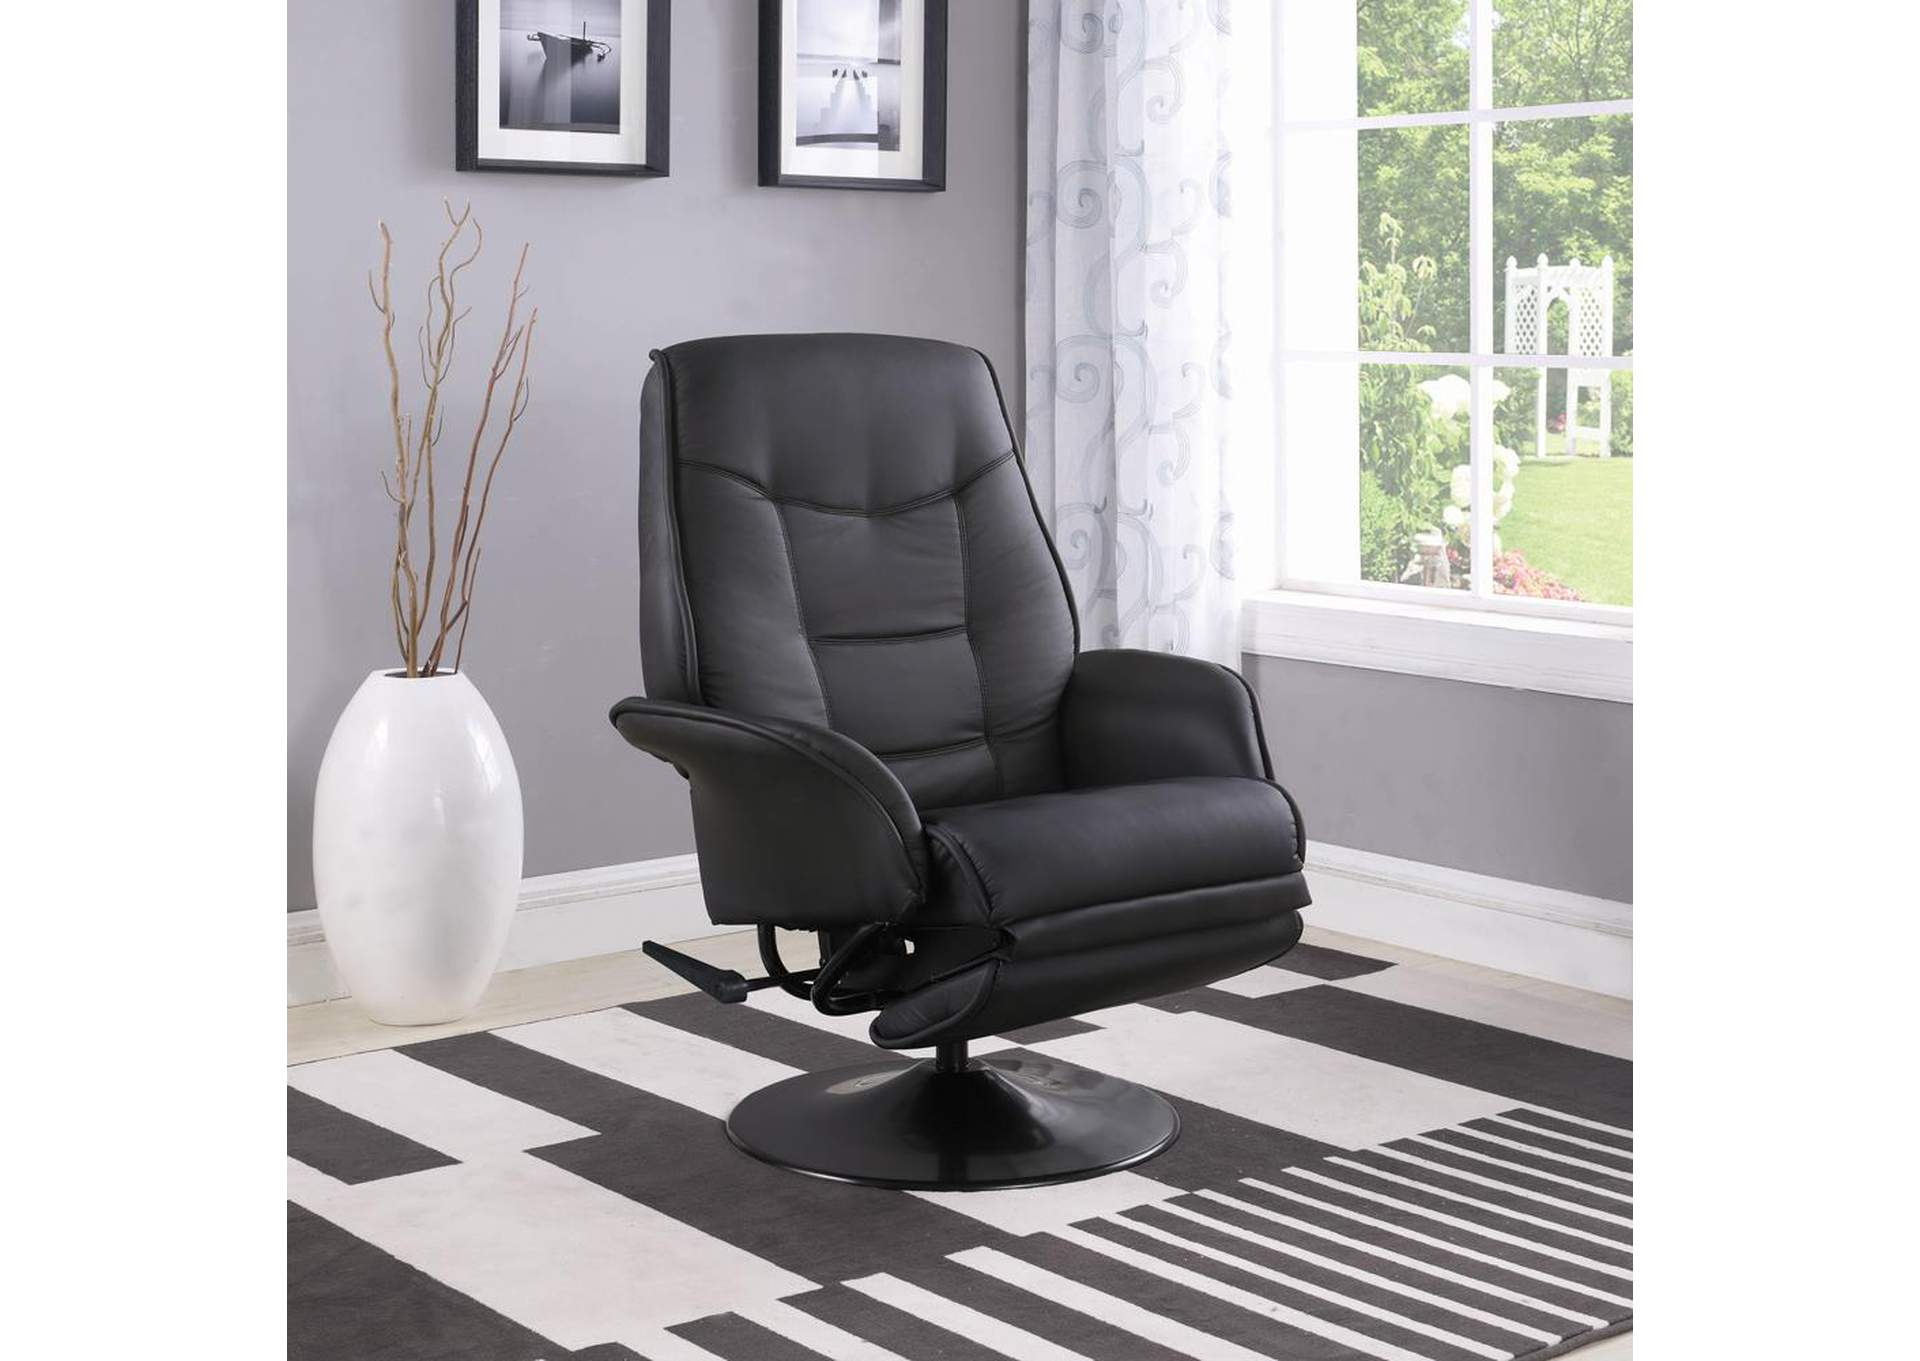 Berri Black Swivel Recliner,Coaster Furniture